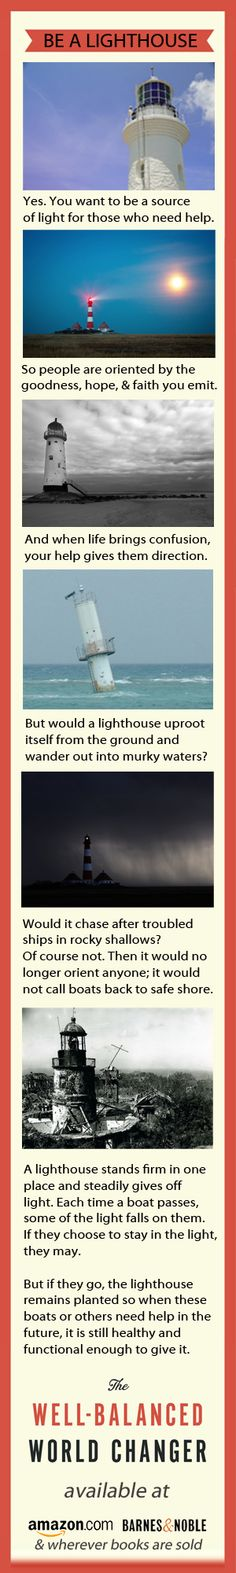 How to Help People Without Enabling Them or Running Yourself Into the Ground - Be a Lighthouse  (from the Well Balanced World Changer - available at pre-release price of $3.49 for e-books now on Kindle http://amzn.com/B00C2ZT8M2 or Nook http://bit.ly/1dzPuoZ.  Inspirational Quotes, Facebook Quotes, Pinterest Quotes